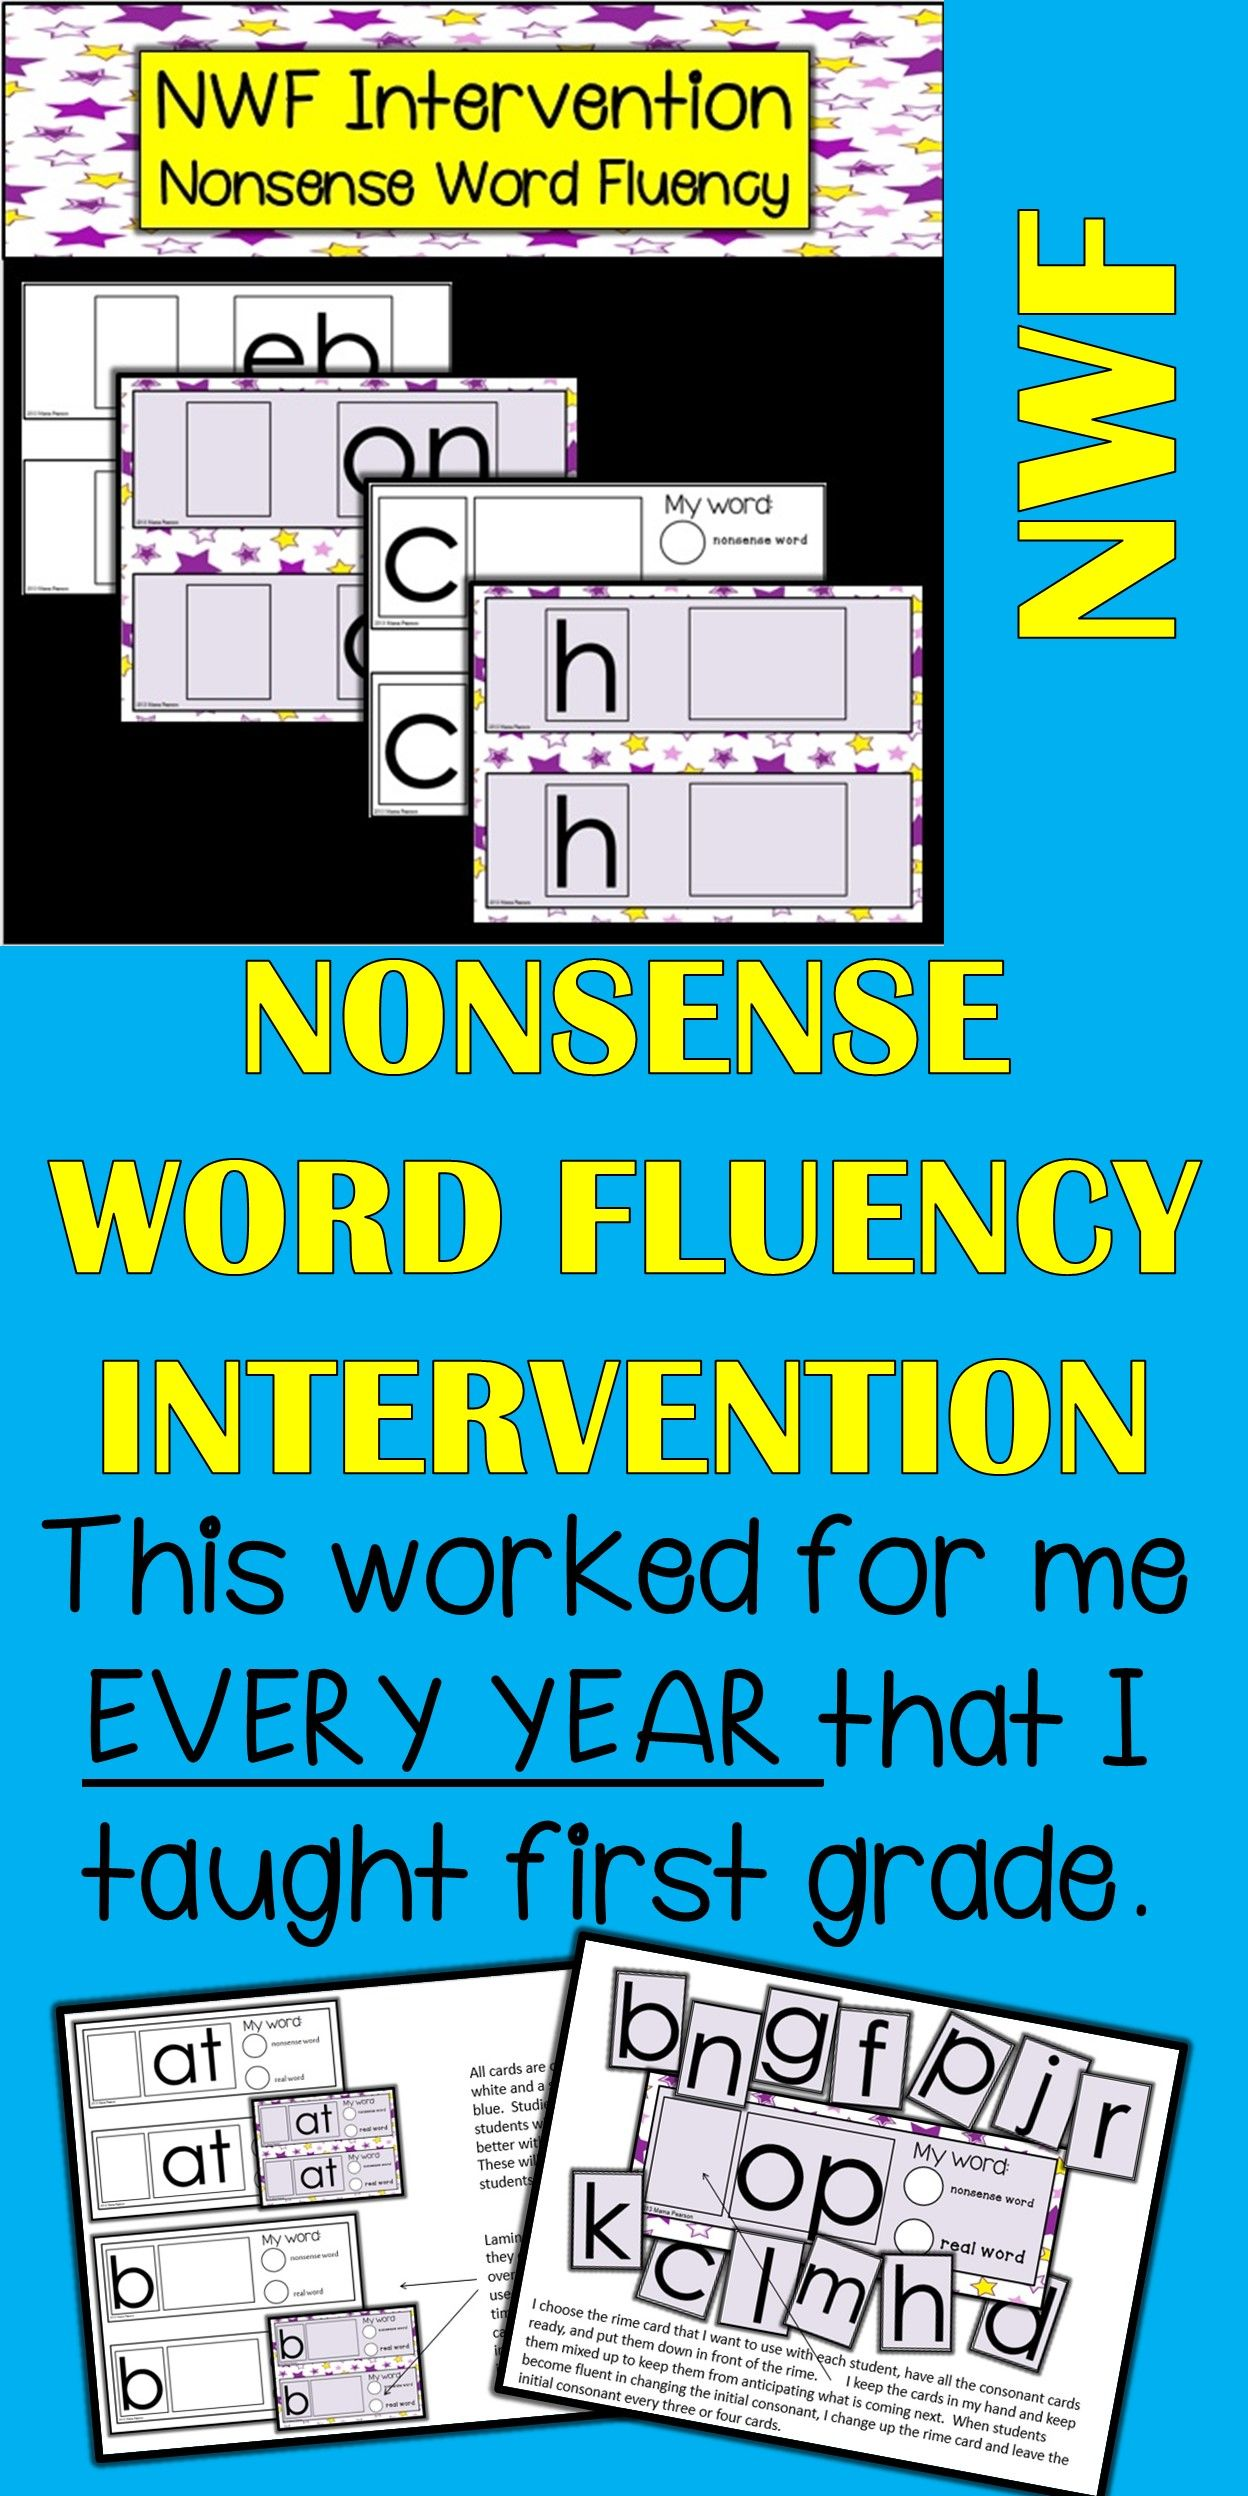 Nonsense Word Fluency (NWF) Intervention Work